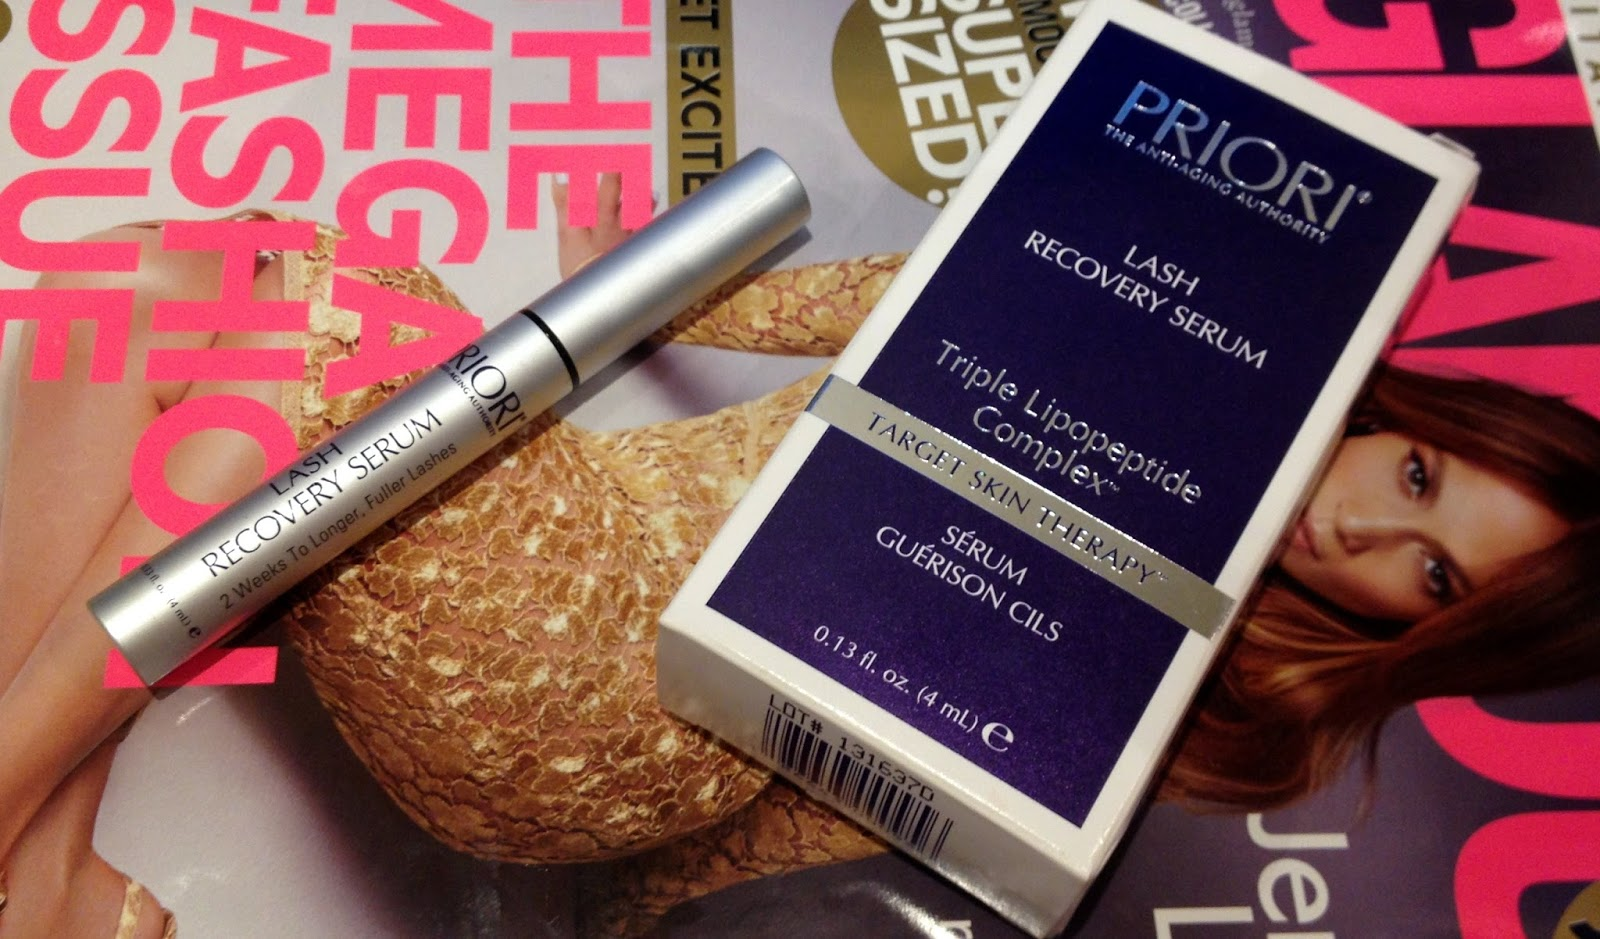 PRIORI Lash Recovery Serum Review